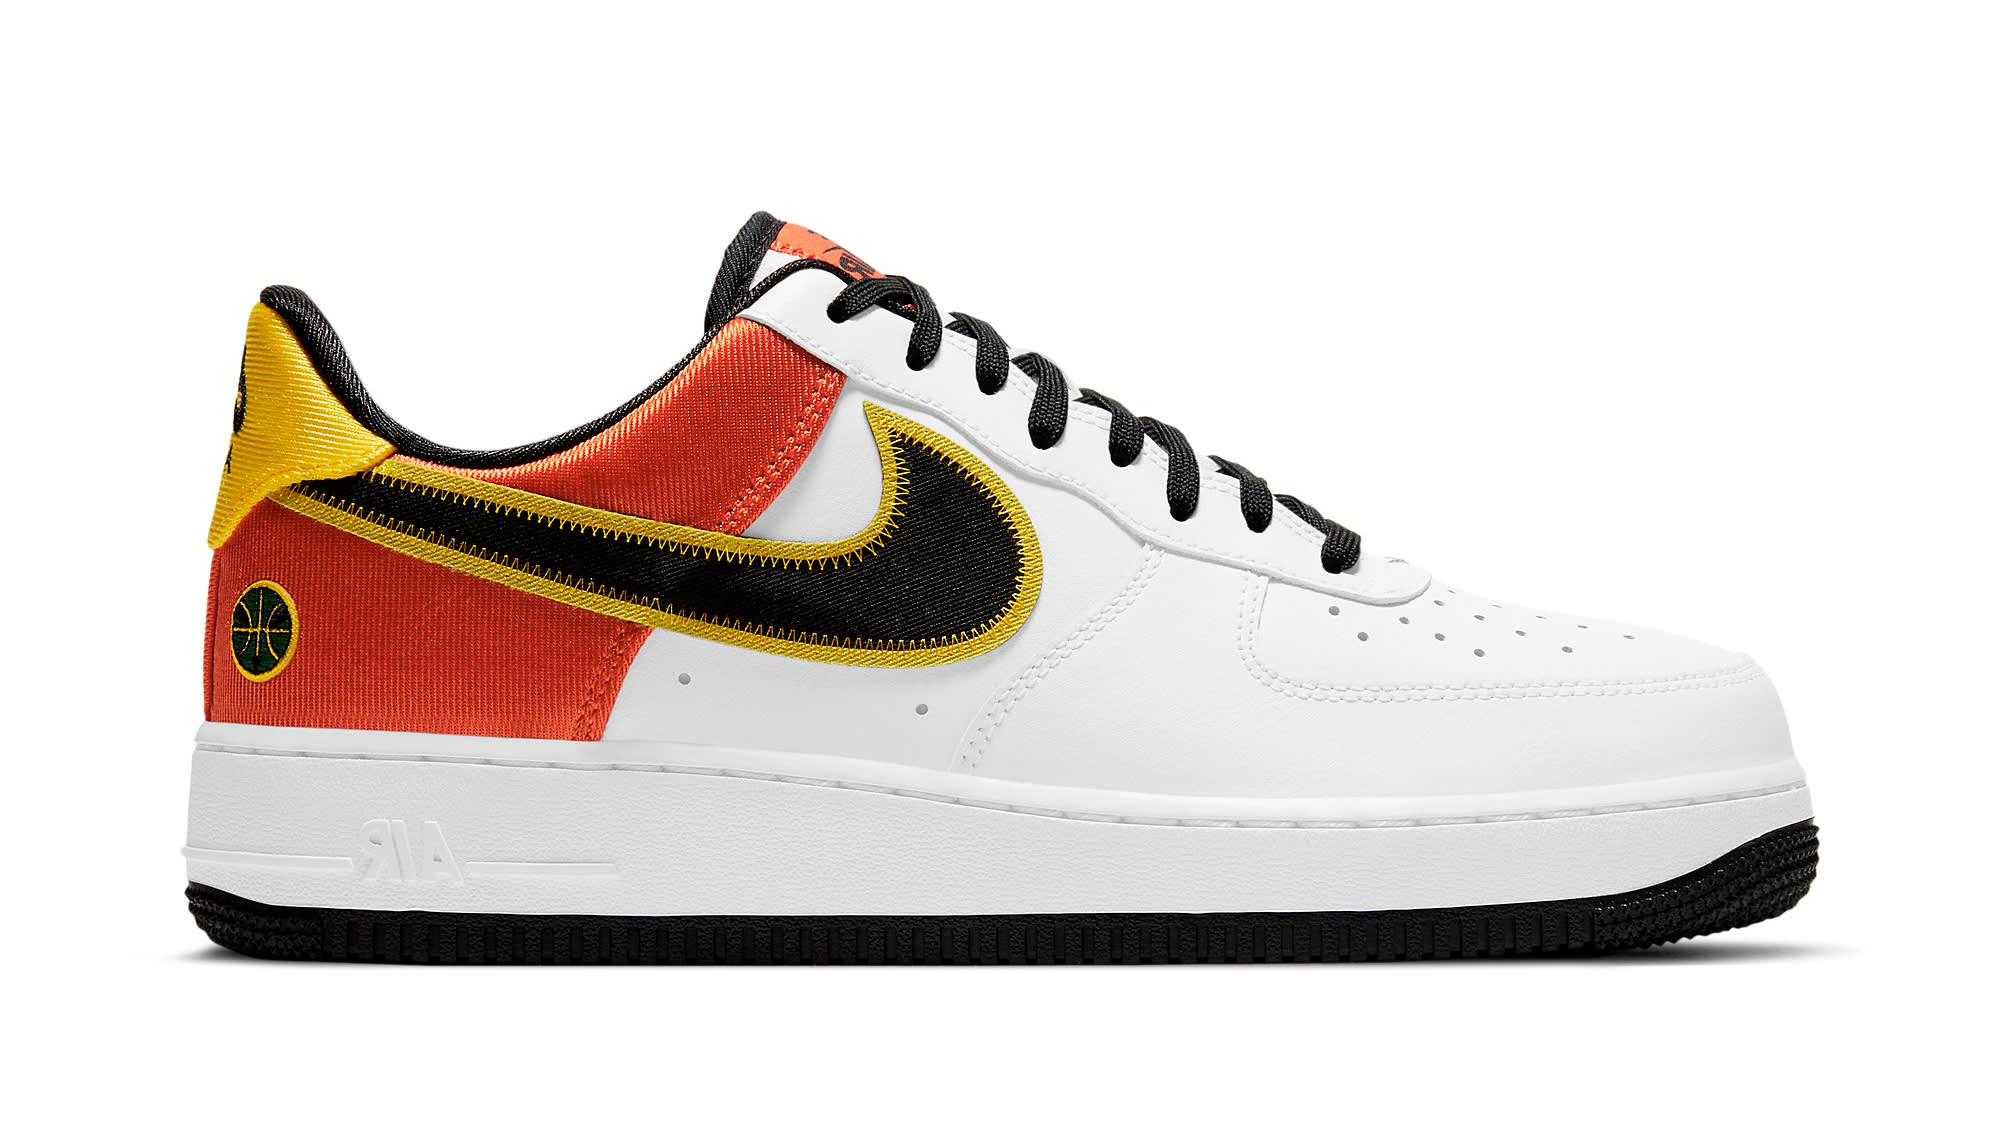 Nike Air Force 1 Low 'Rayguns' CU8070-100 Release Date